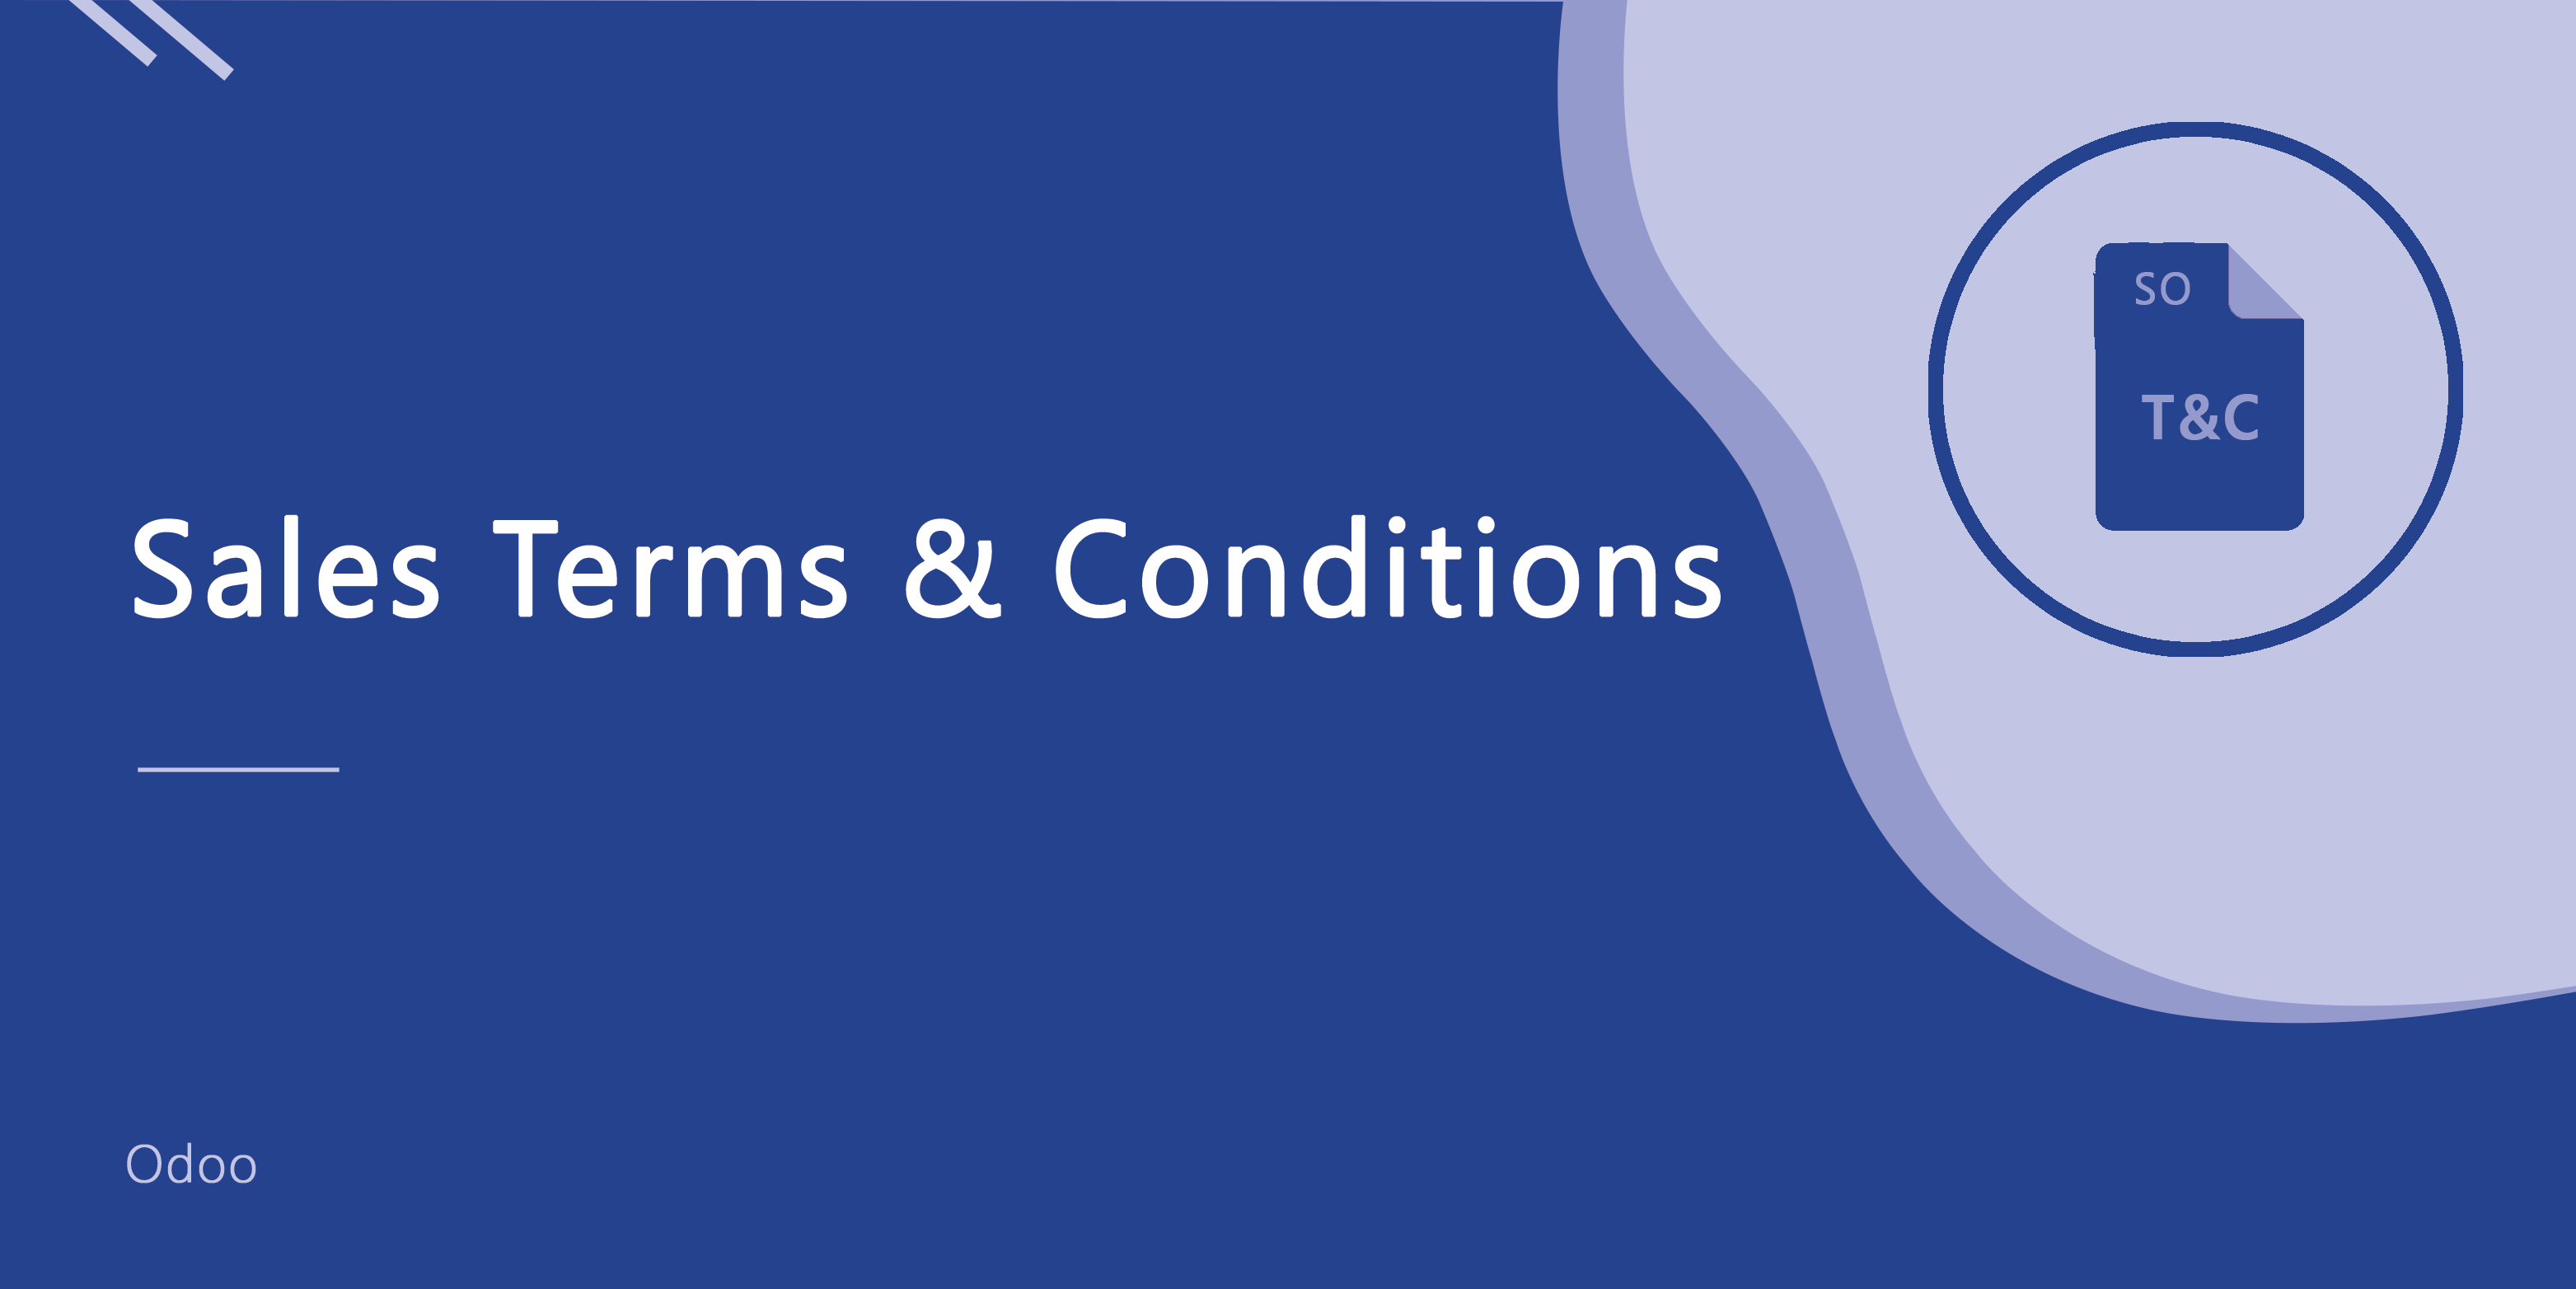 Sales Terms & Conditions